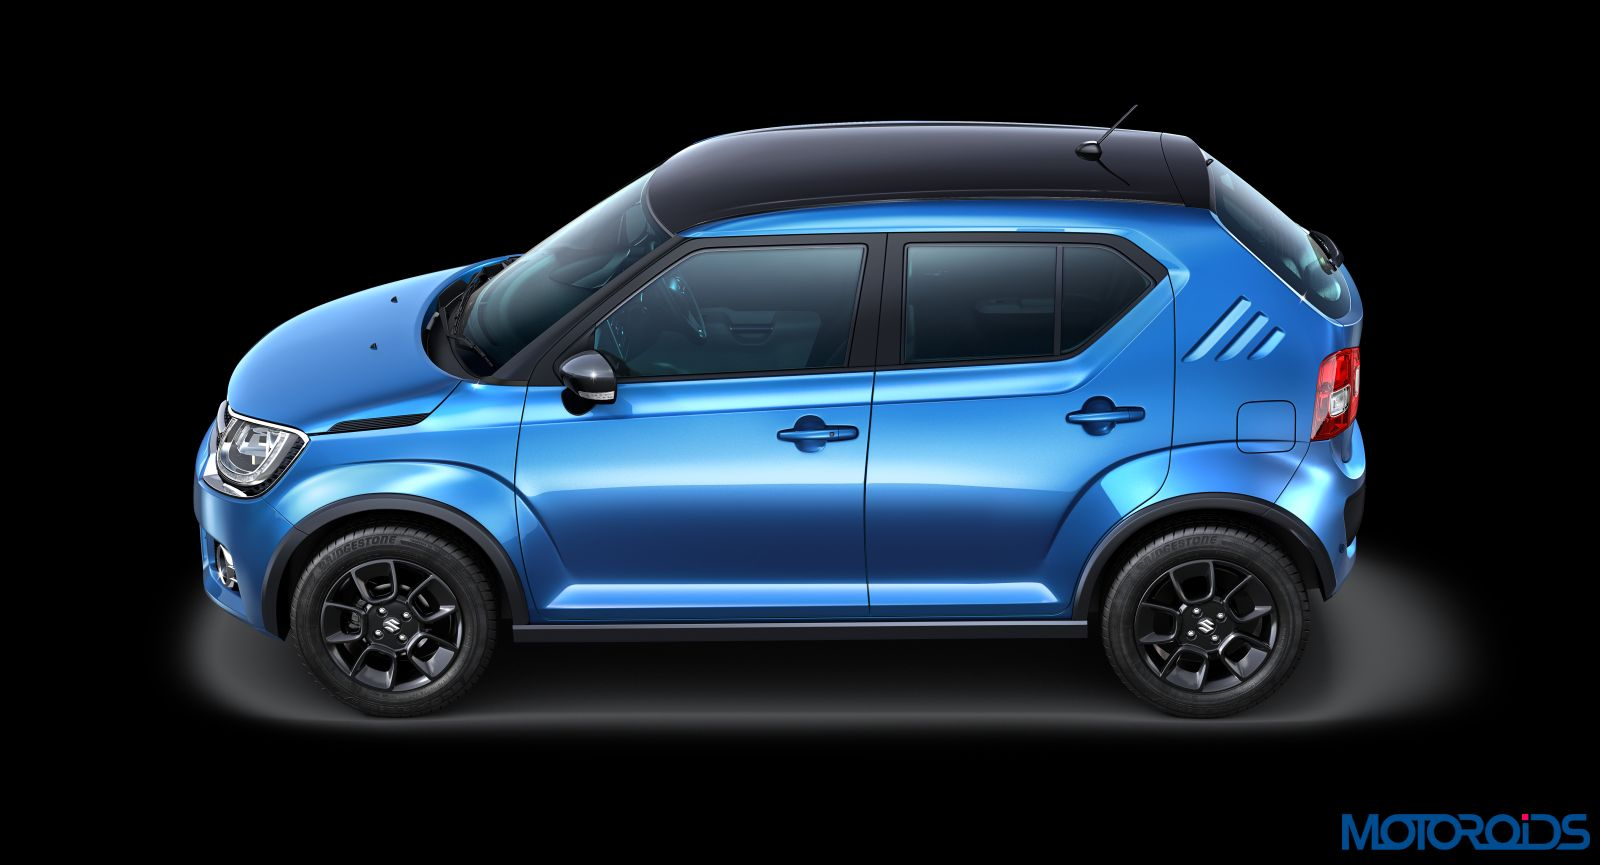 maruti suzuki ignis variants prices features and all. Black Bedroom Furniture Sets. Home Design Ideas